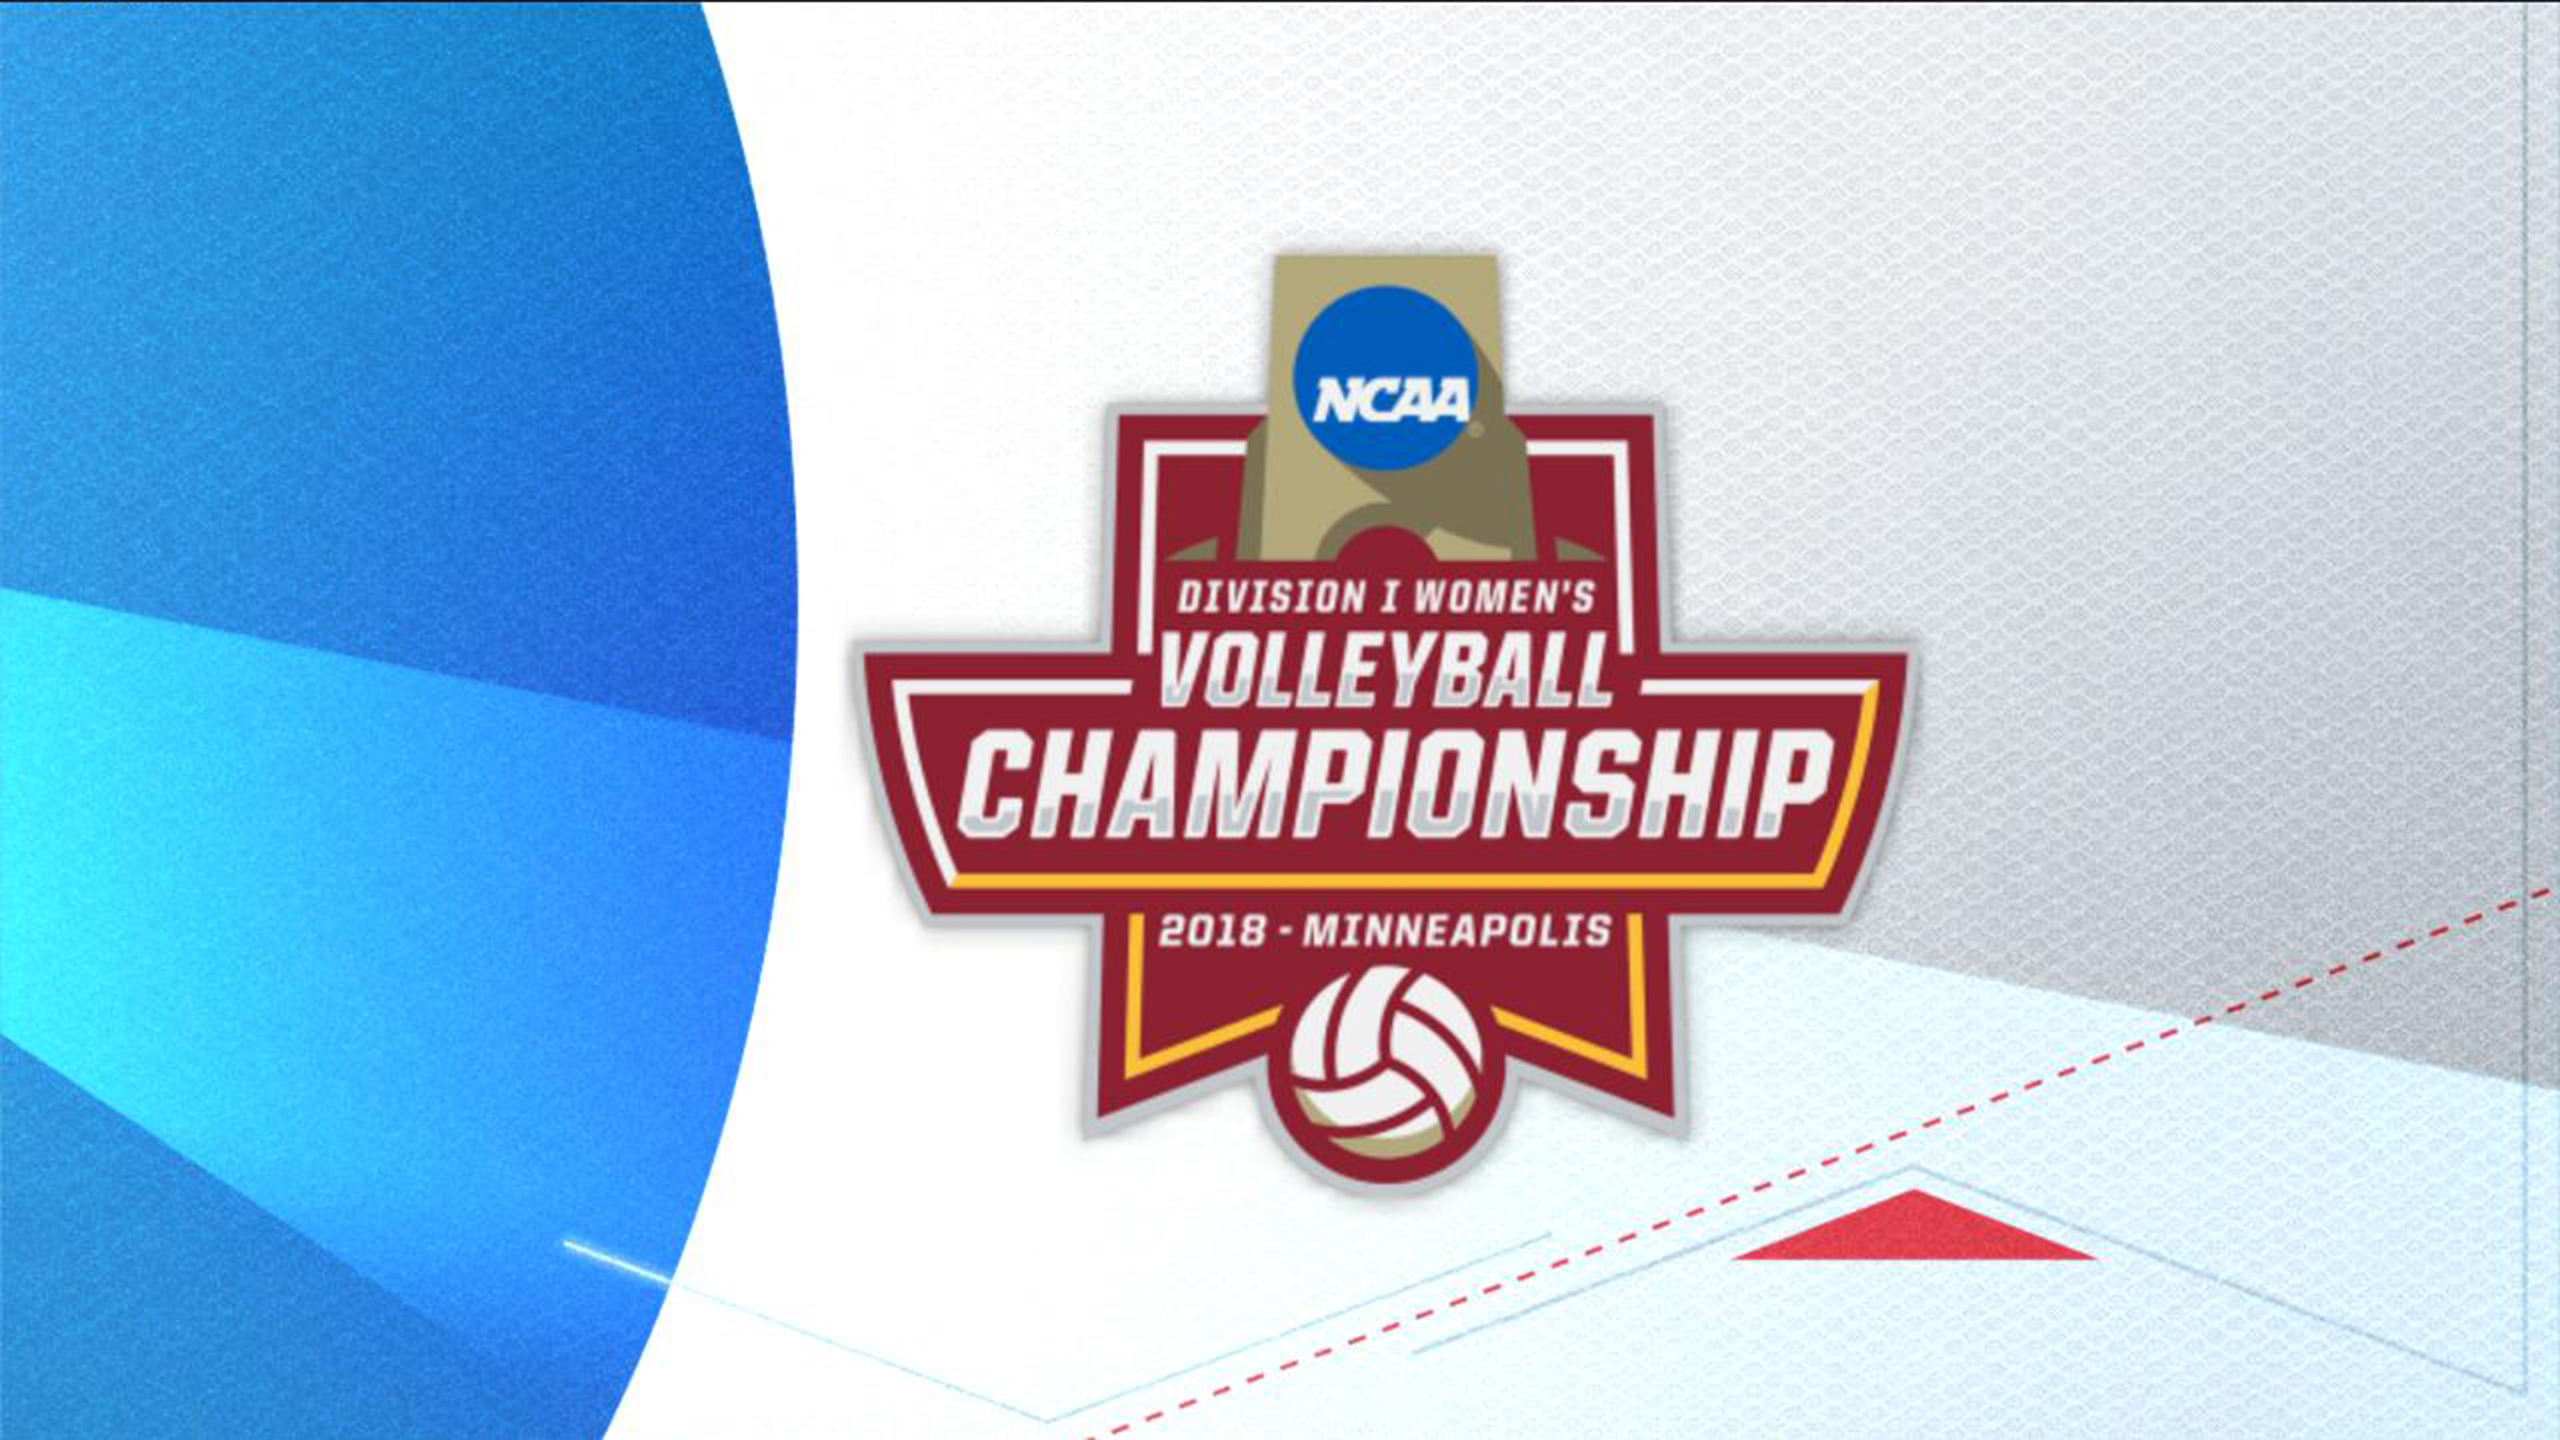 DataCenter - #7 Nebraska vs. #3 Illinois (Semifinal #2) (NCAA Division I Women's Volleyball Championship)